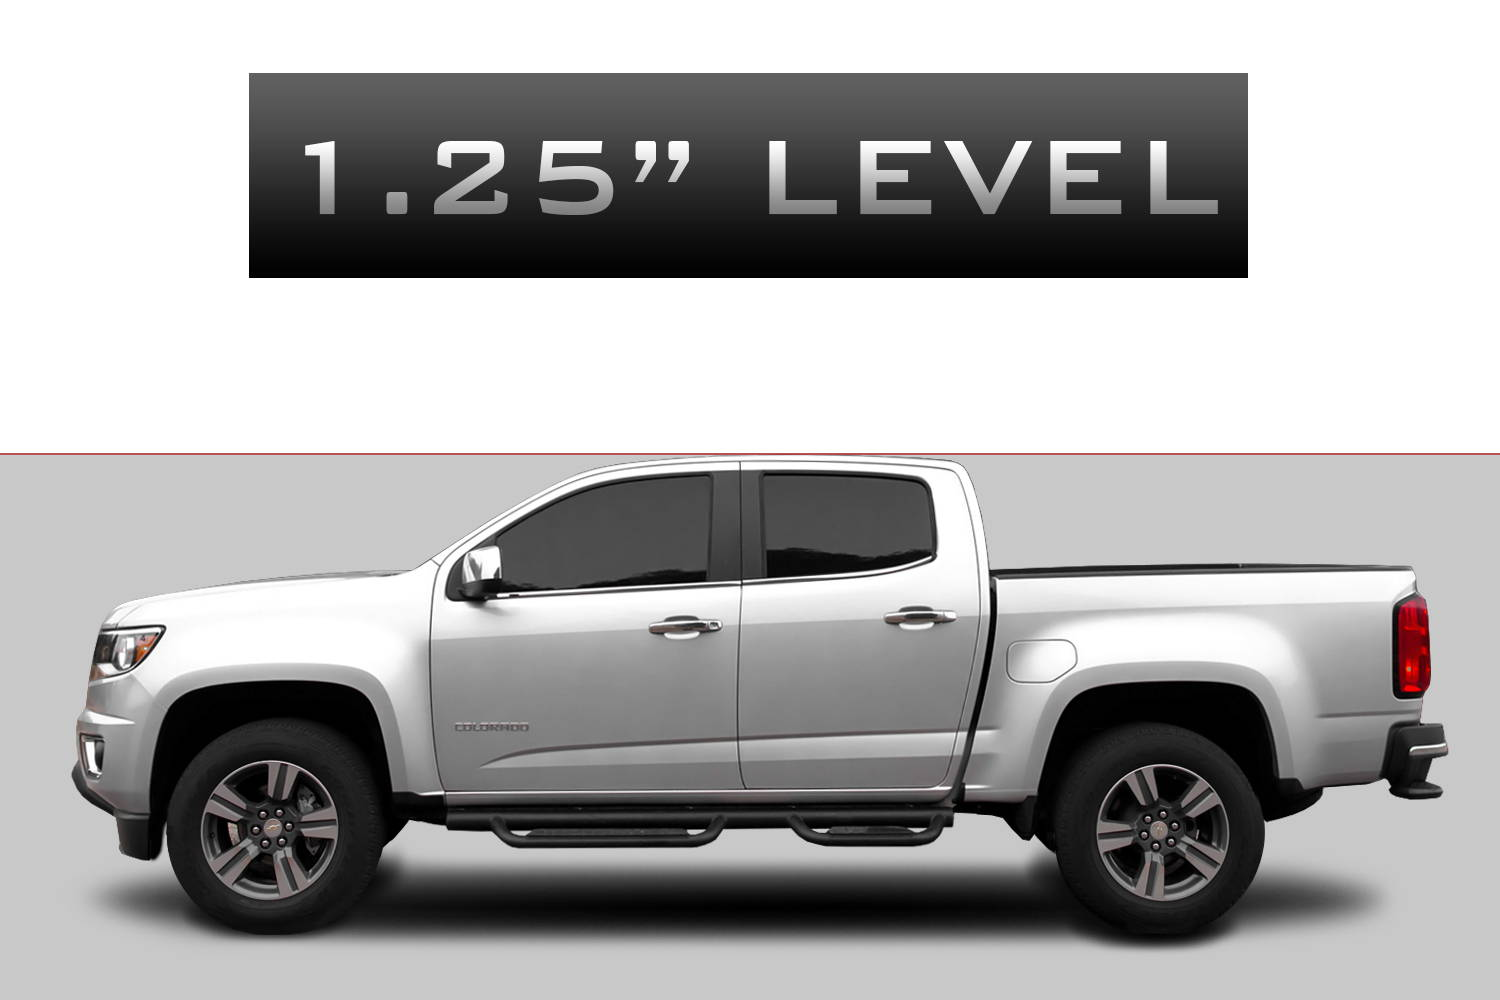 Chevrolet Colorado Off-Road Customizing Package Level 1 by 3C Trucks